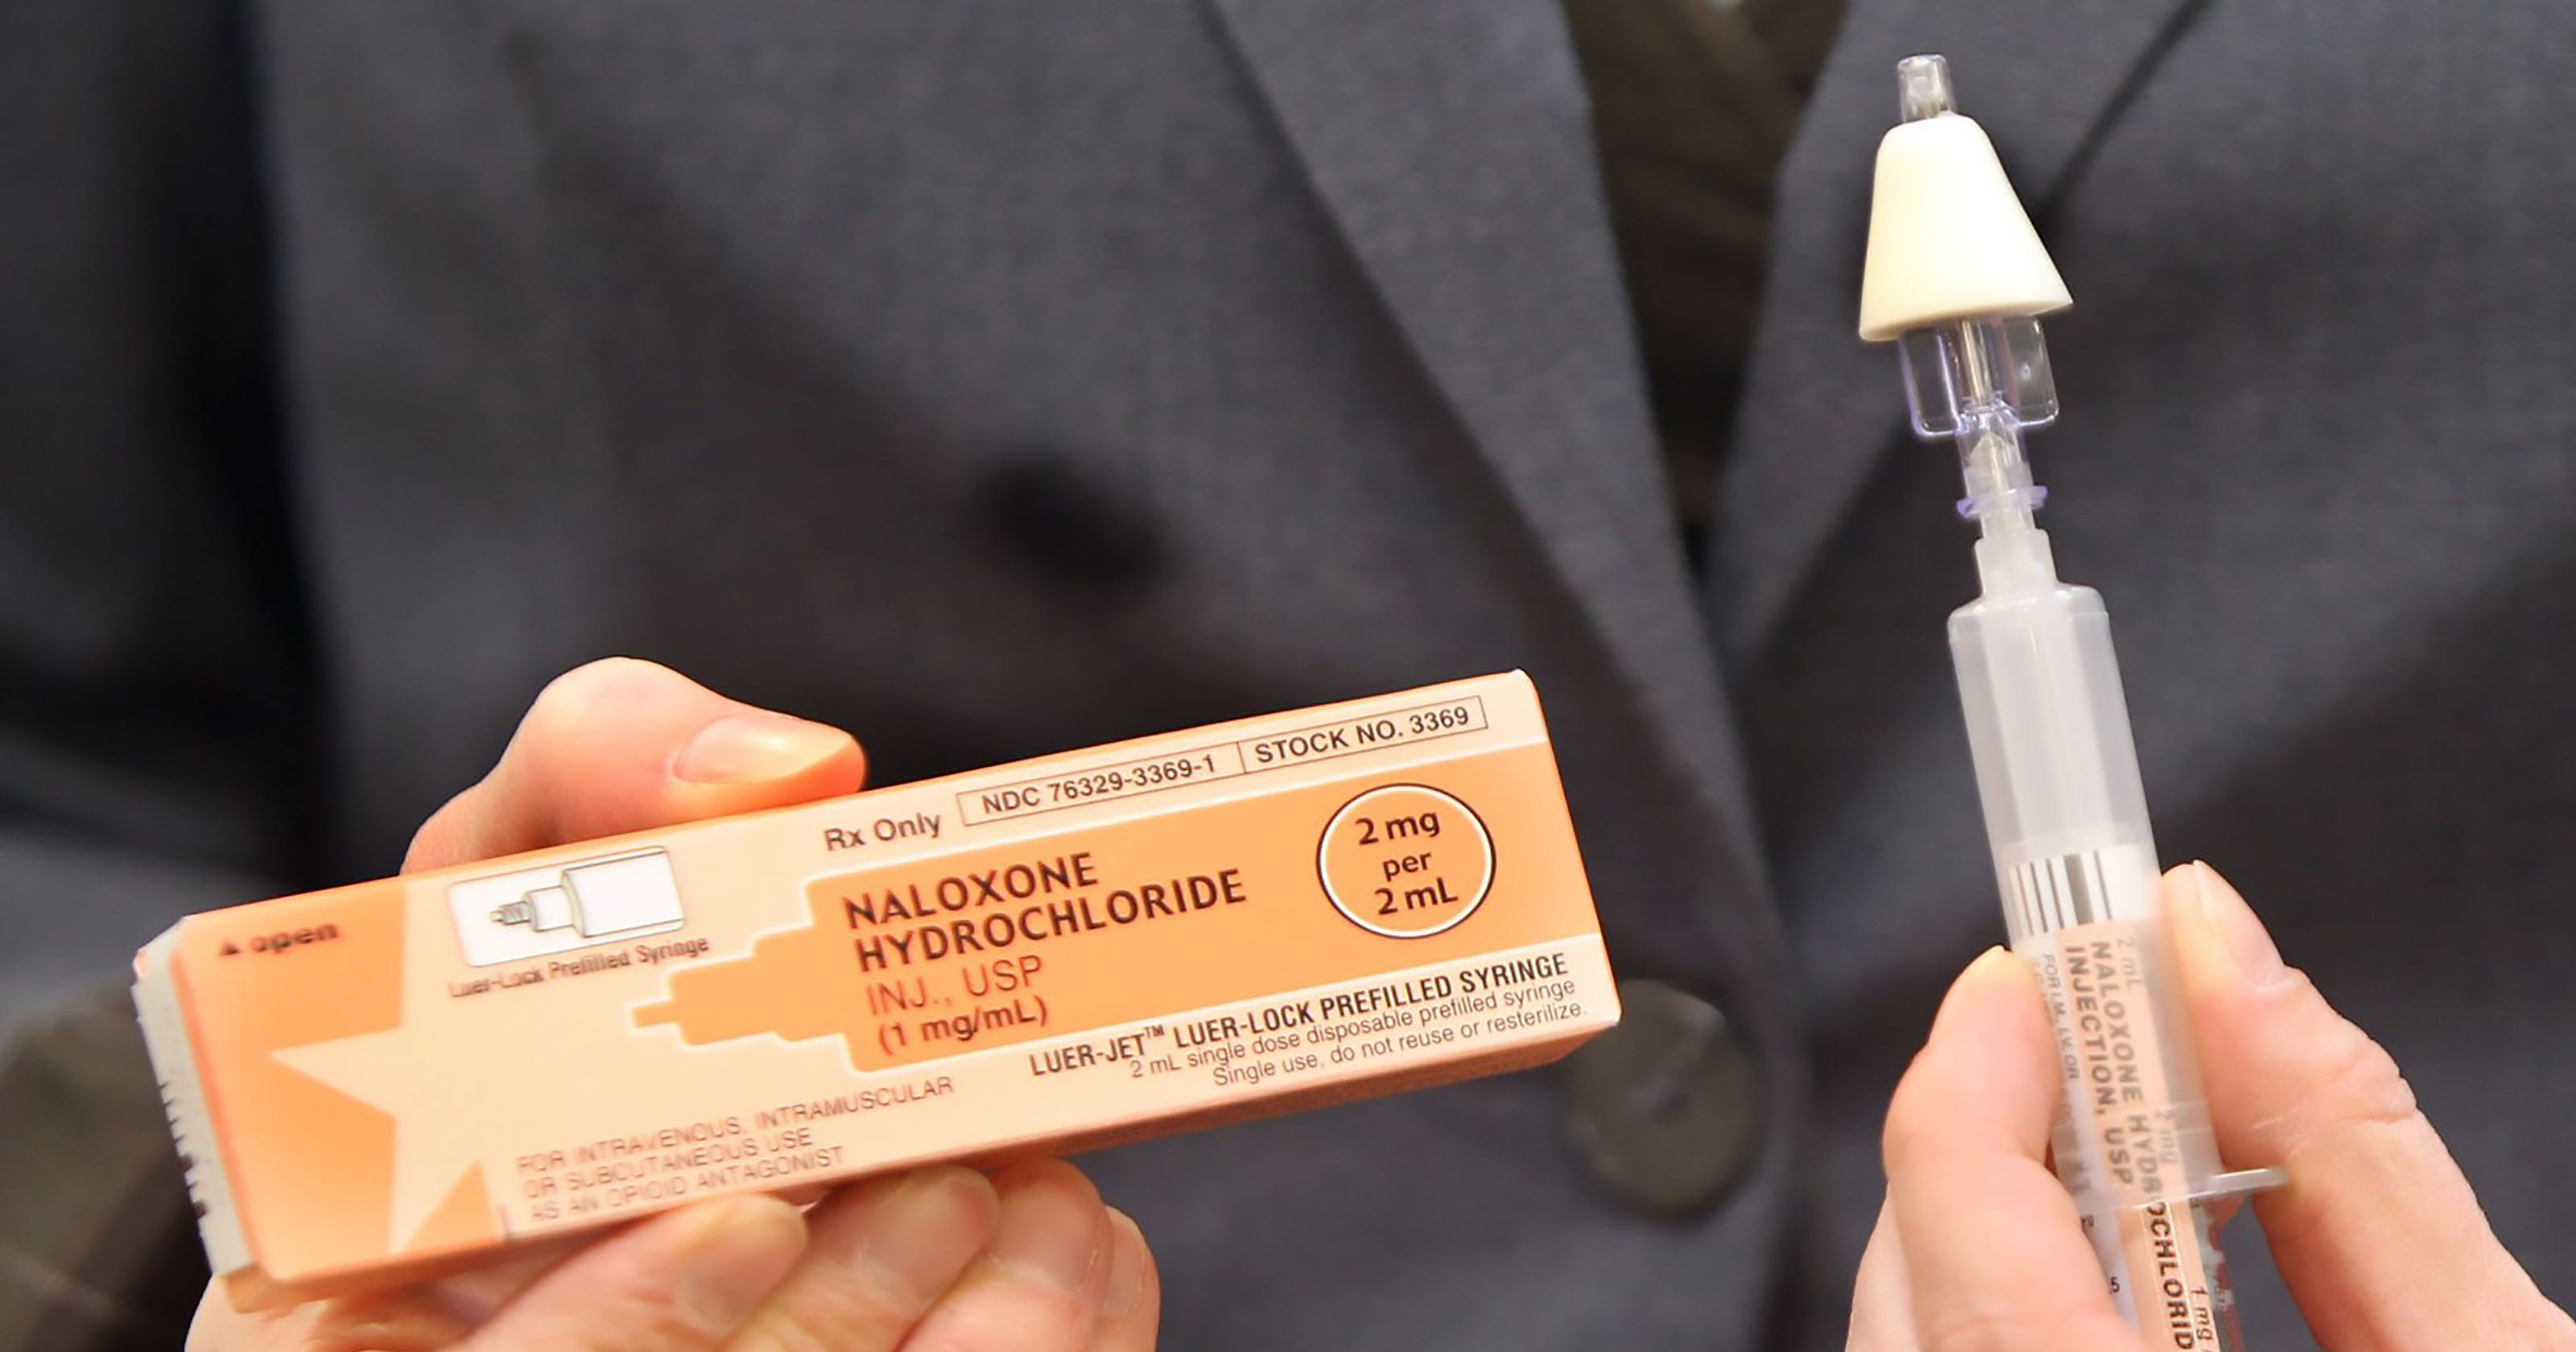 How to get naloxone, available in most states without a